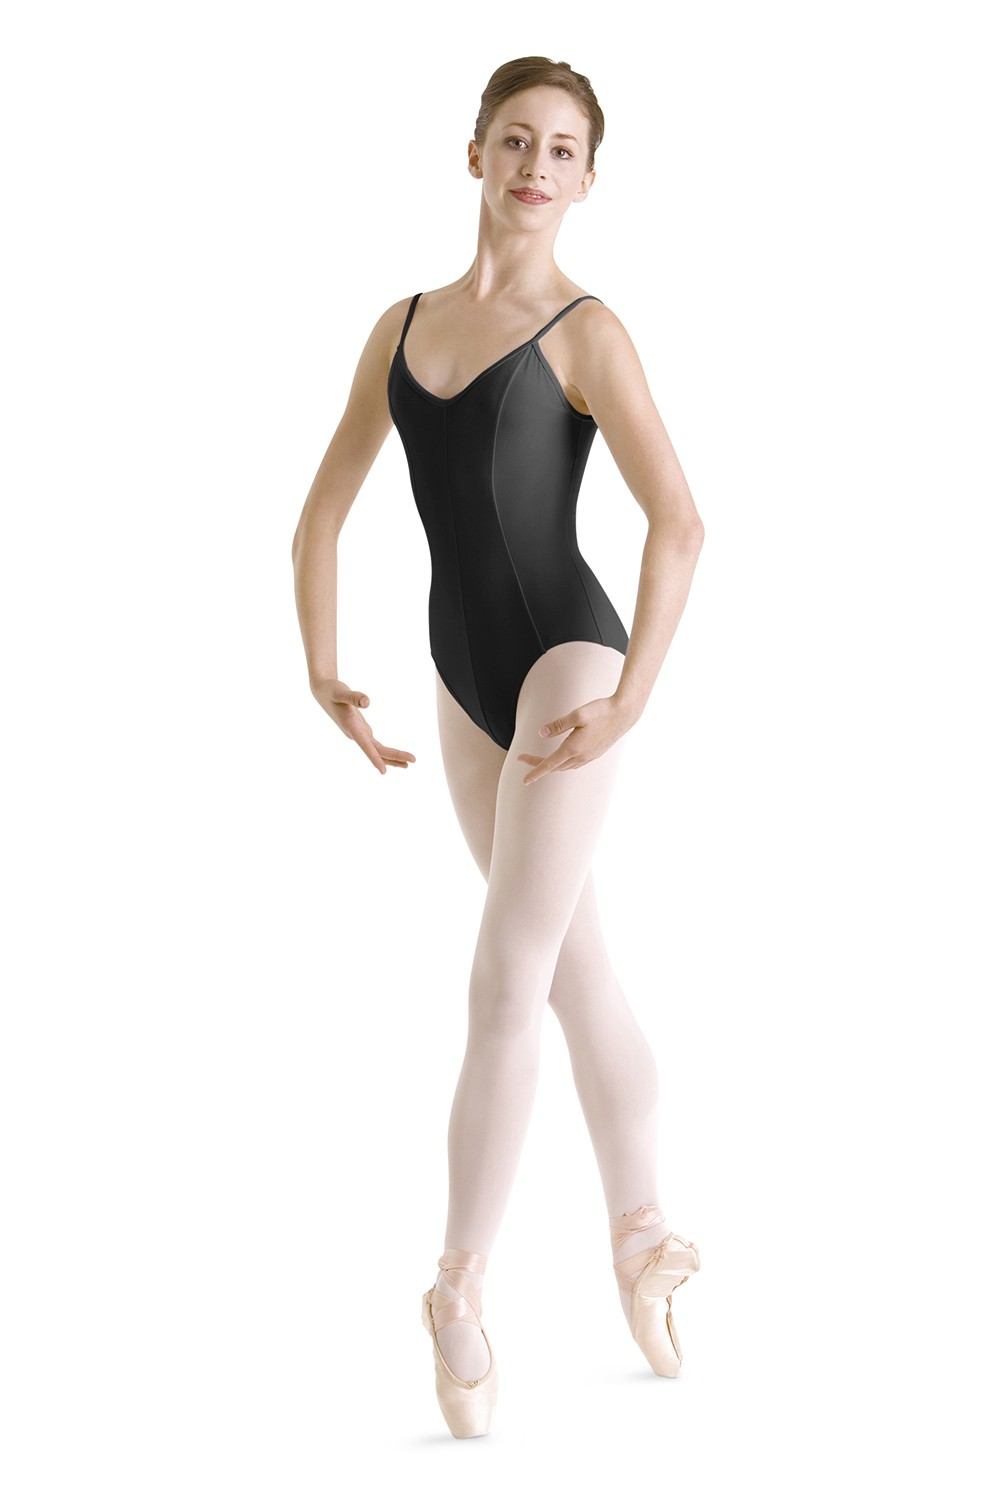 Body Con Scollo V E Cuciture Principessa Women's Dance Leotards